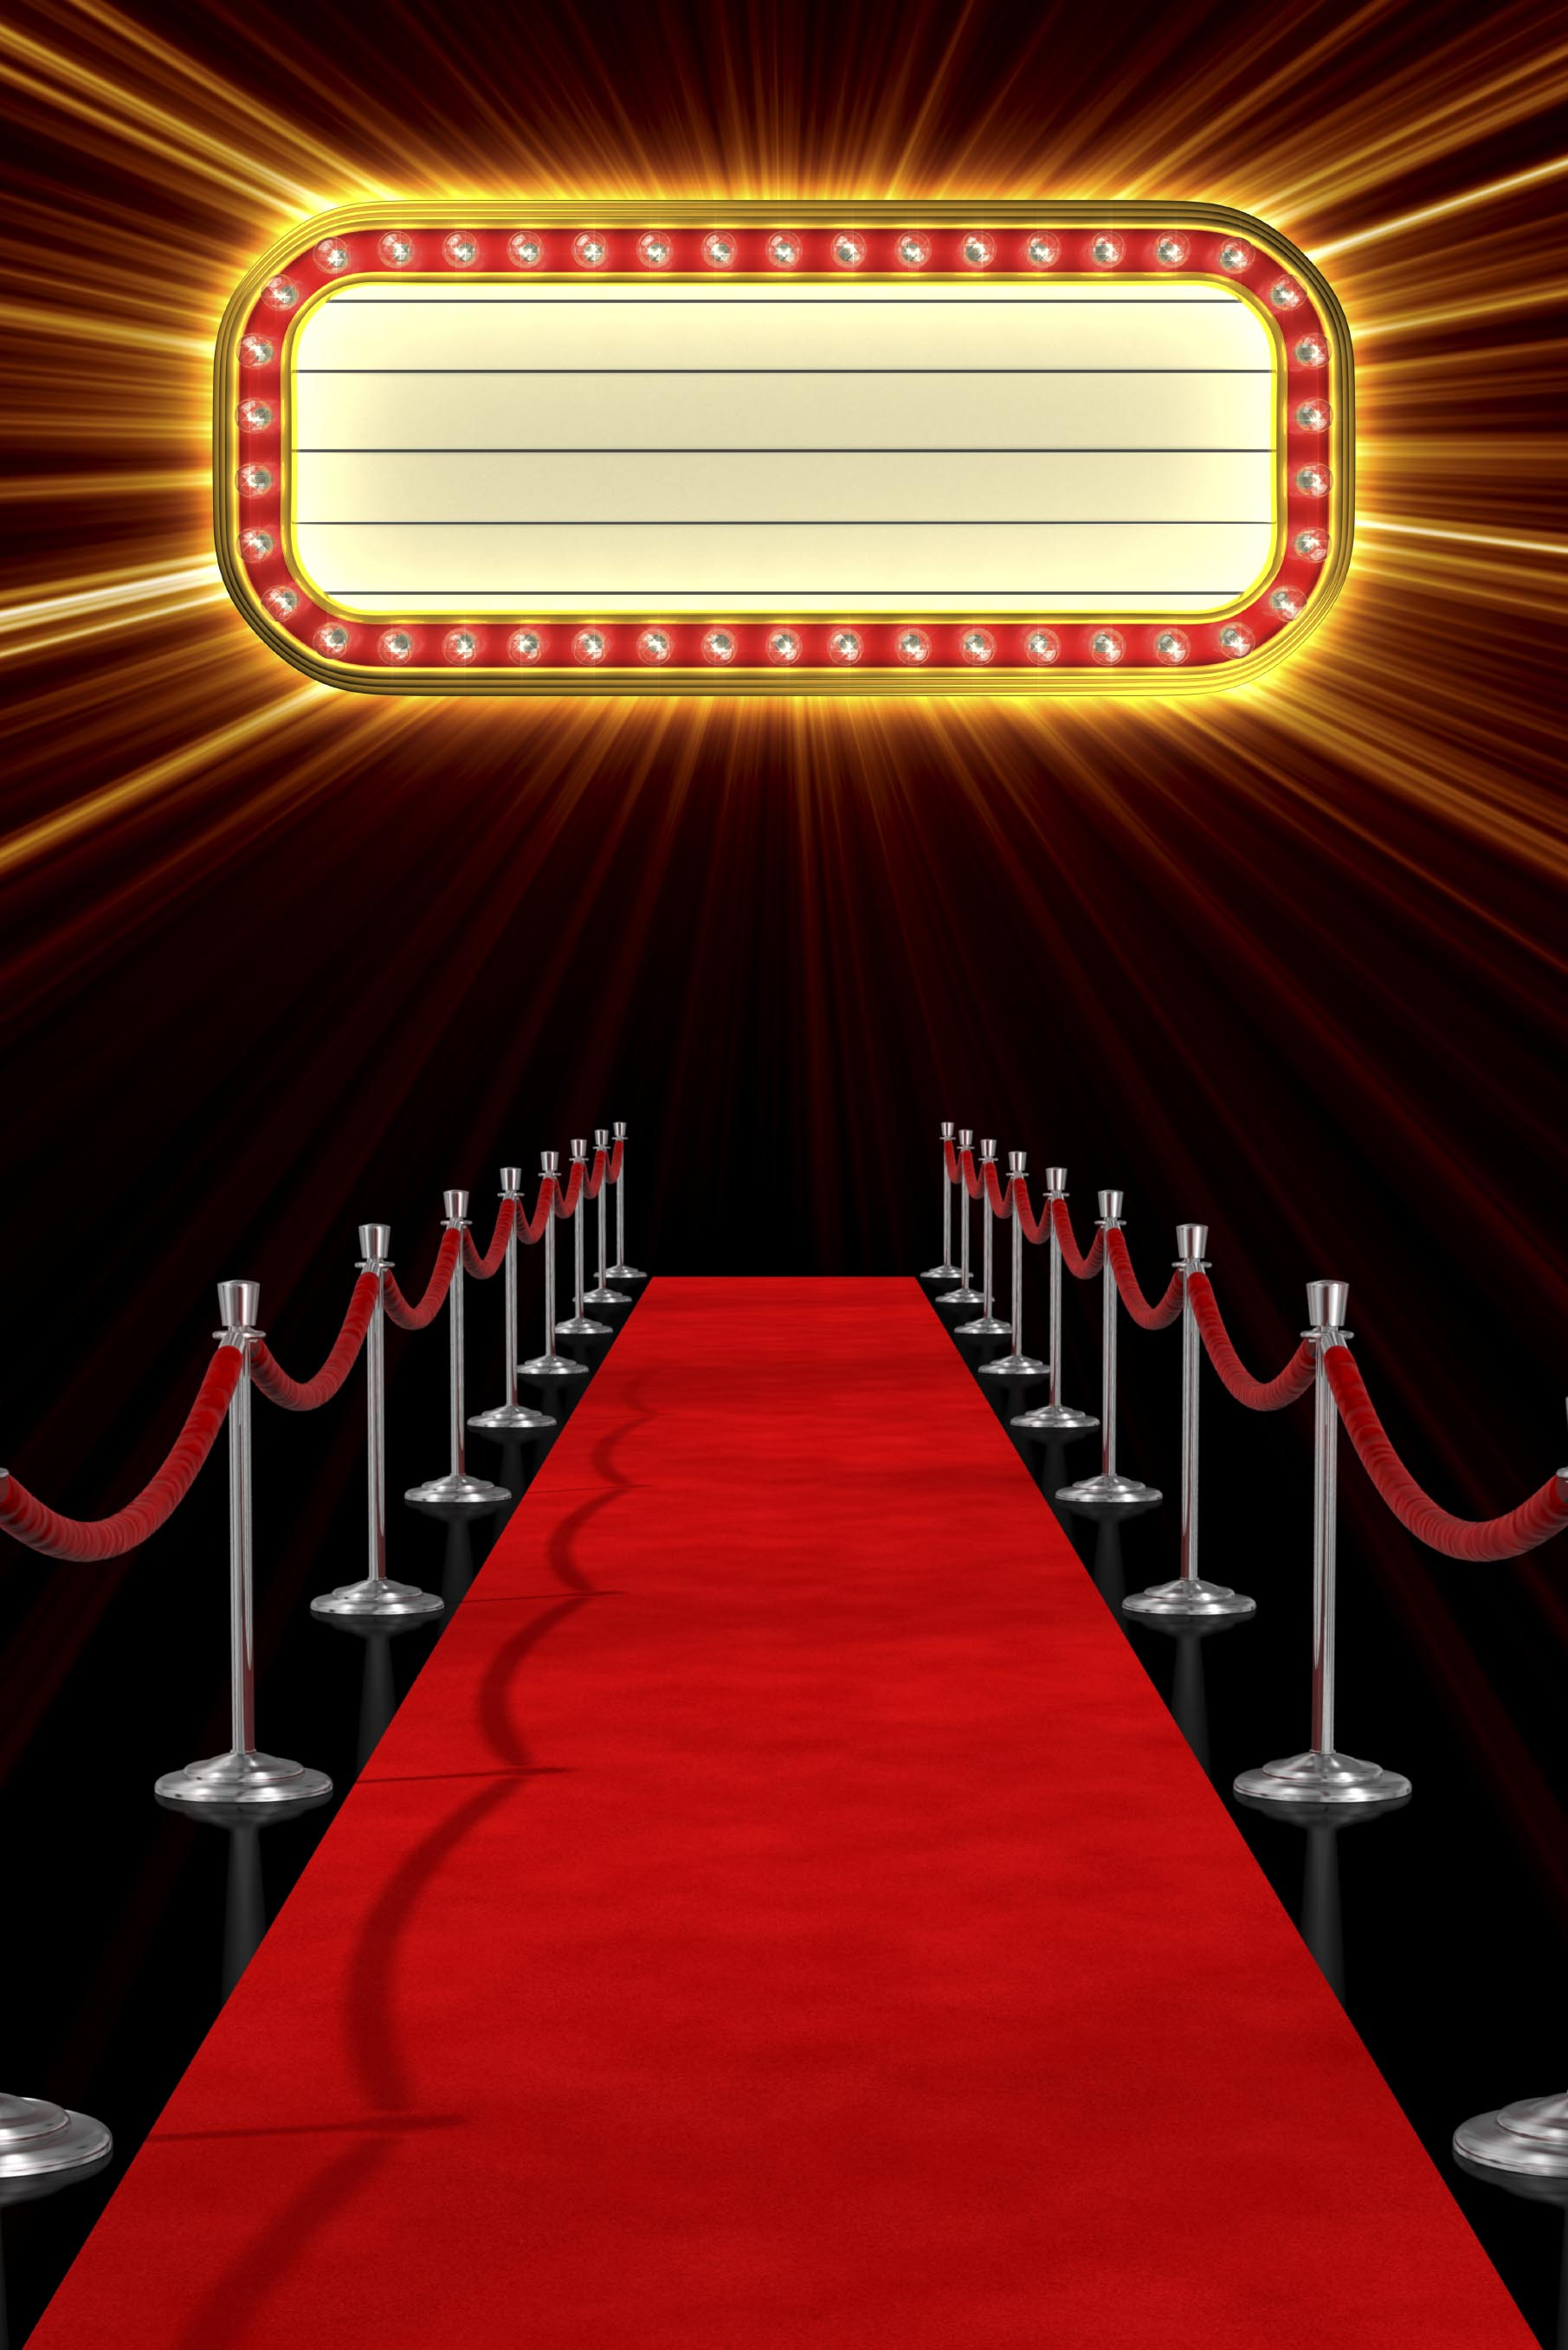 Background clipart hollywood #5